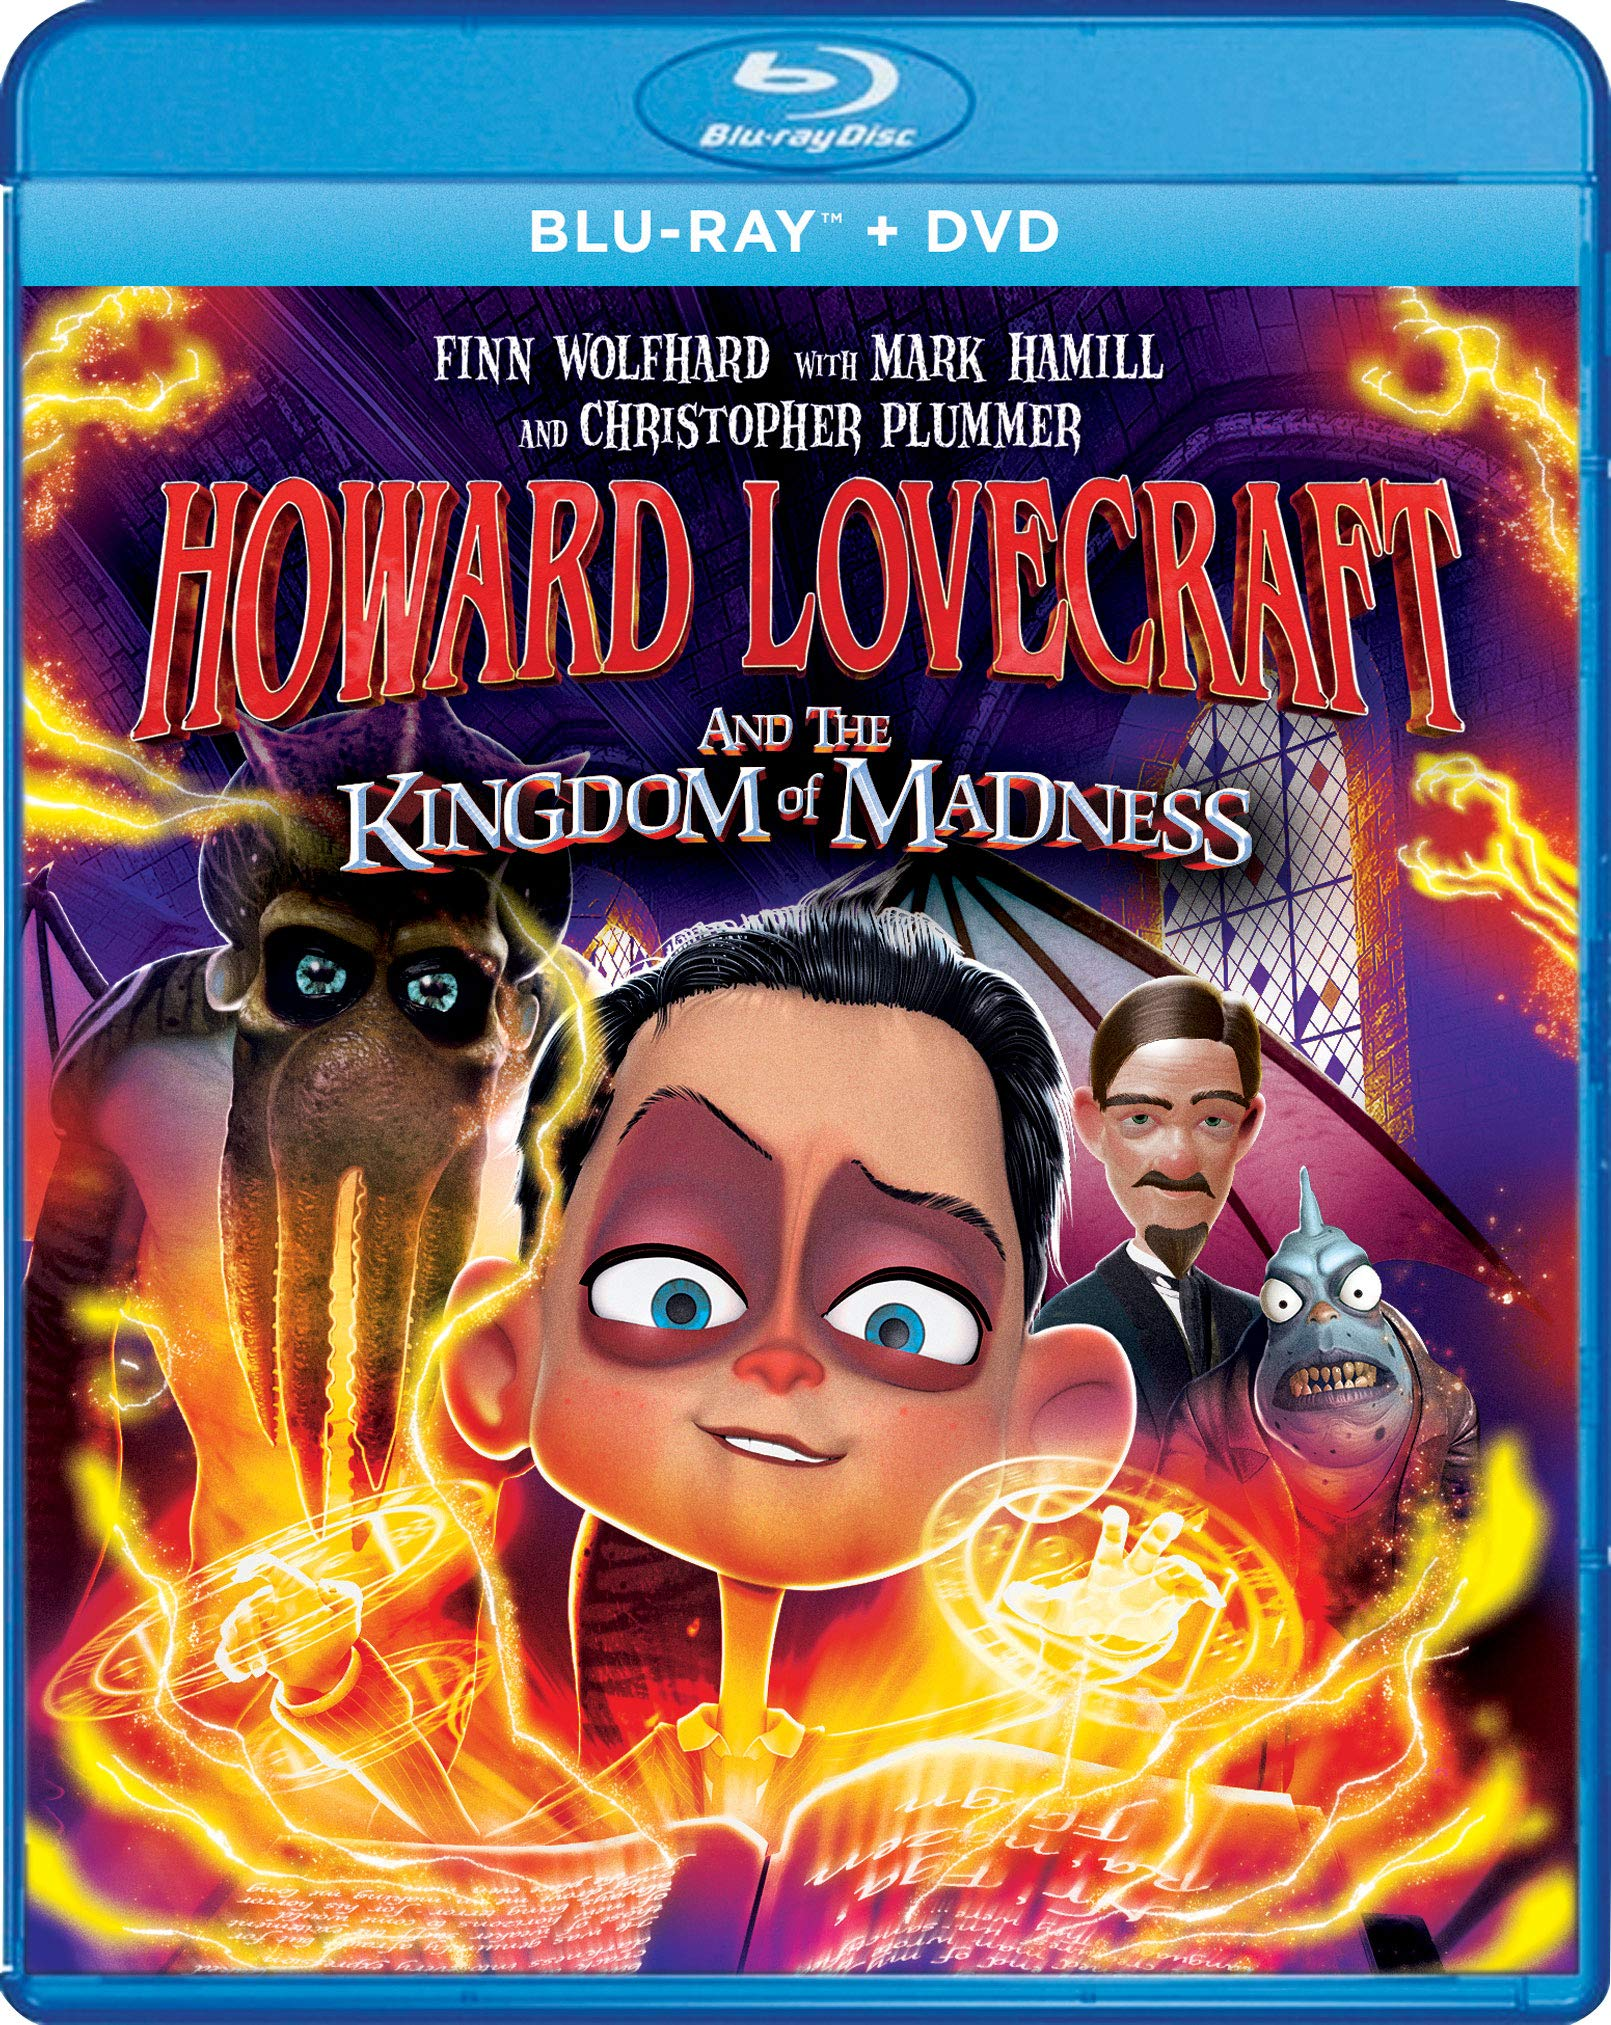 Blu-ray : Howard Lovecraft And The Kingdom Of Madness (Widescreen, 2 Pack)